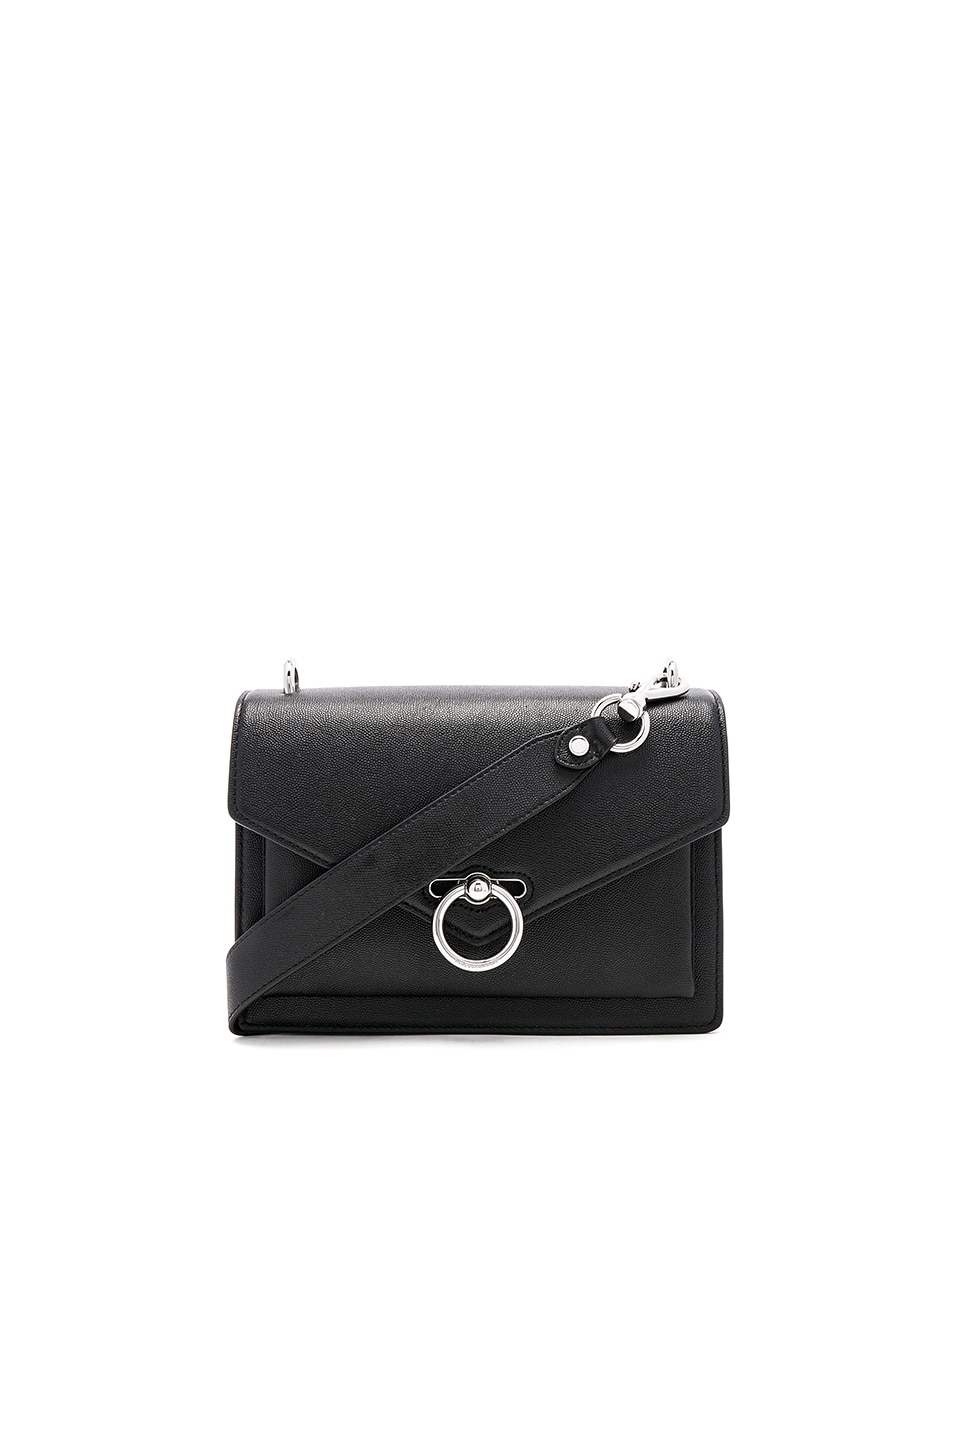 Rebecca Minkoff Jean Medium Shoulder Bag in Black